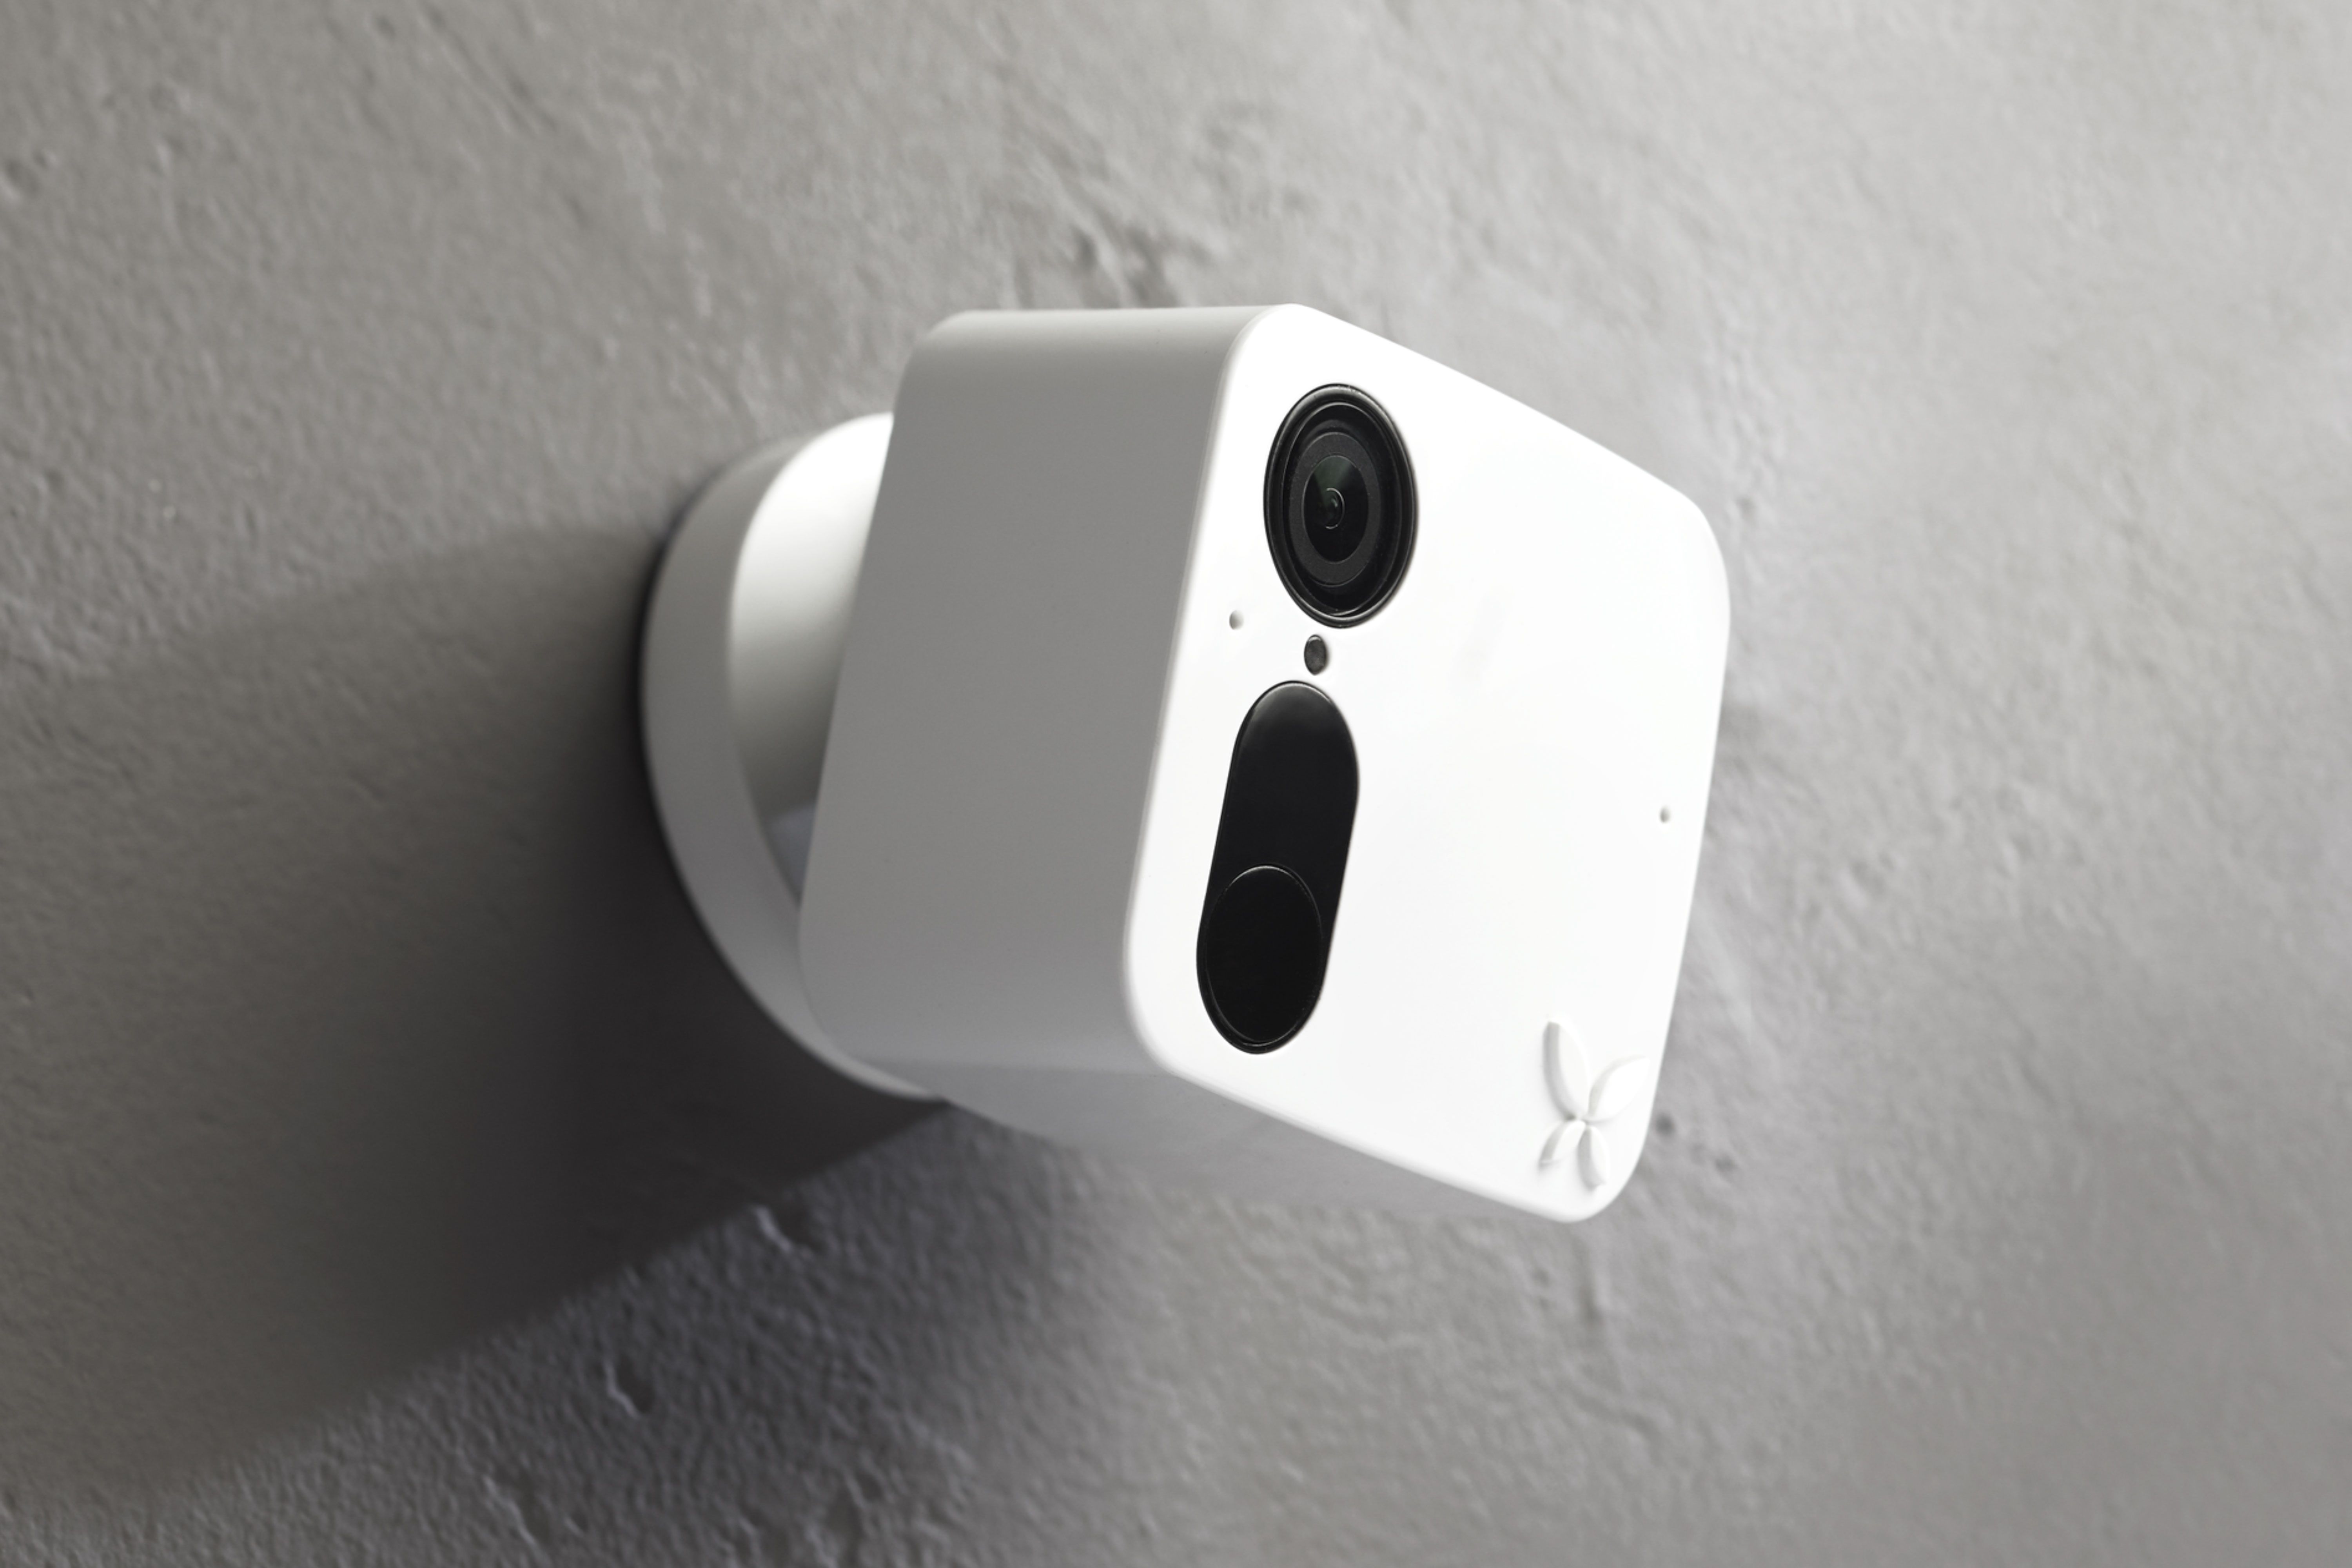 Wireless Security Camera Systems 101 - blog post image